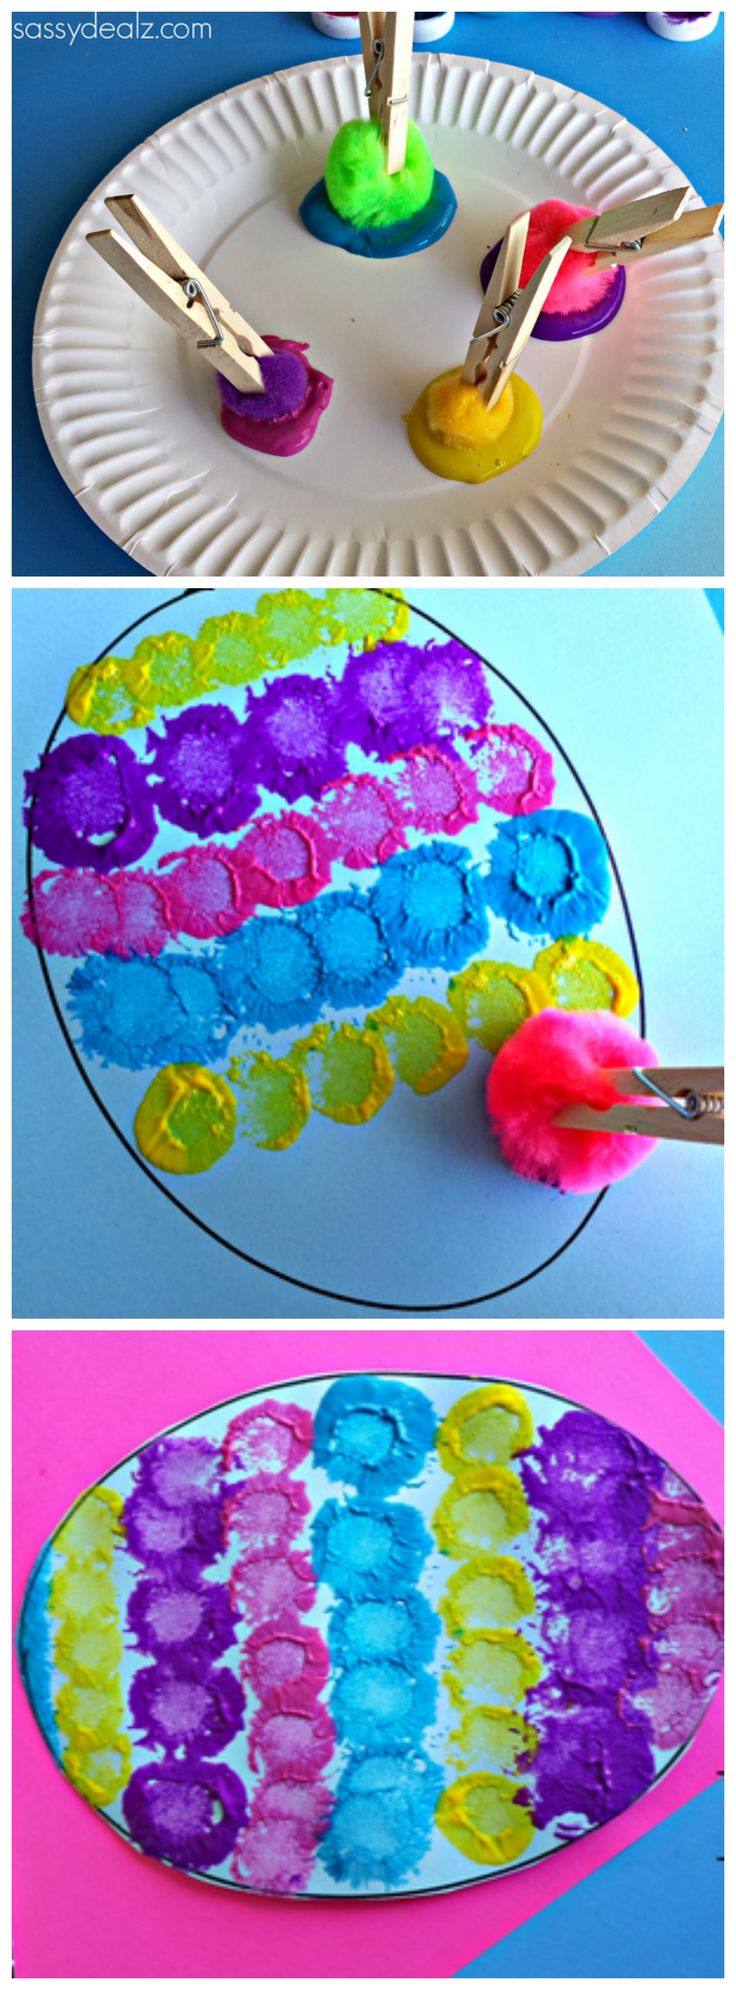 Easter Craft for Kids using pom poms, clothespins, and paint! You could do ANY Holiday or theme or design! Cool idea!